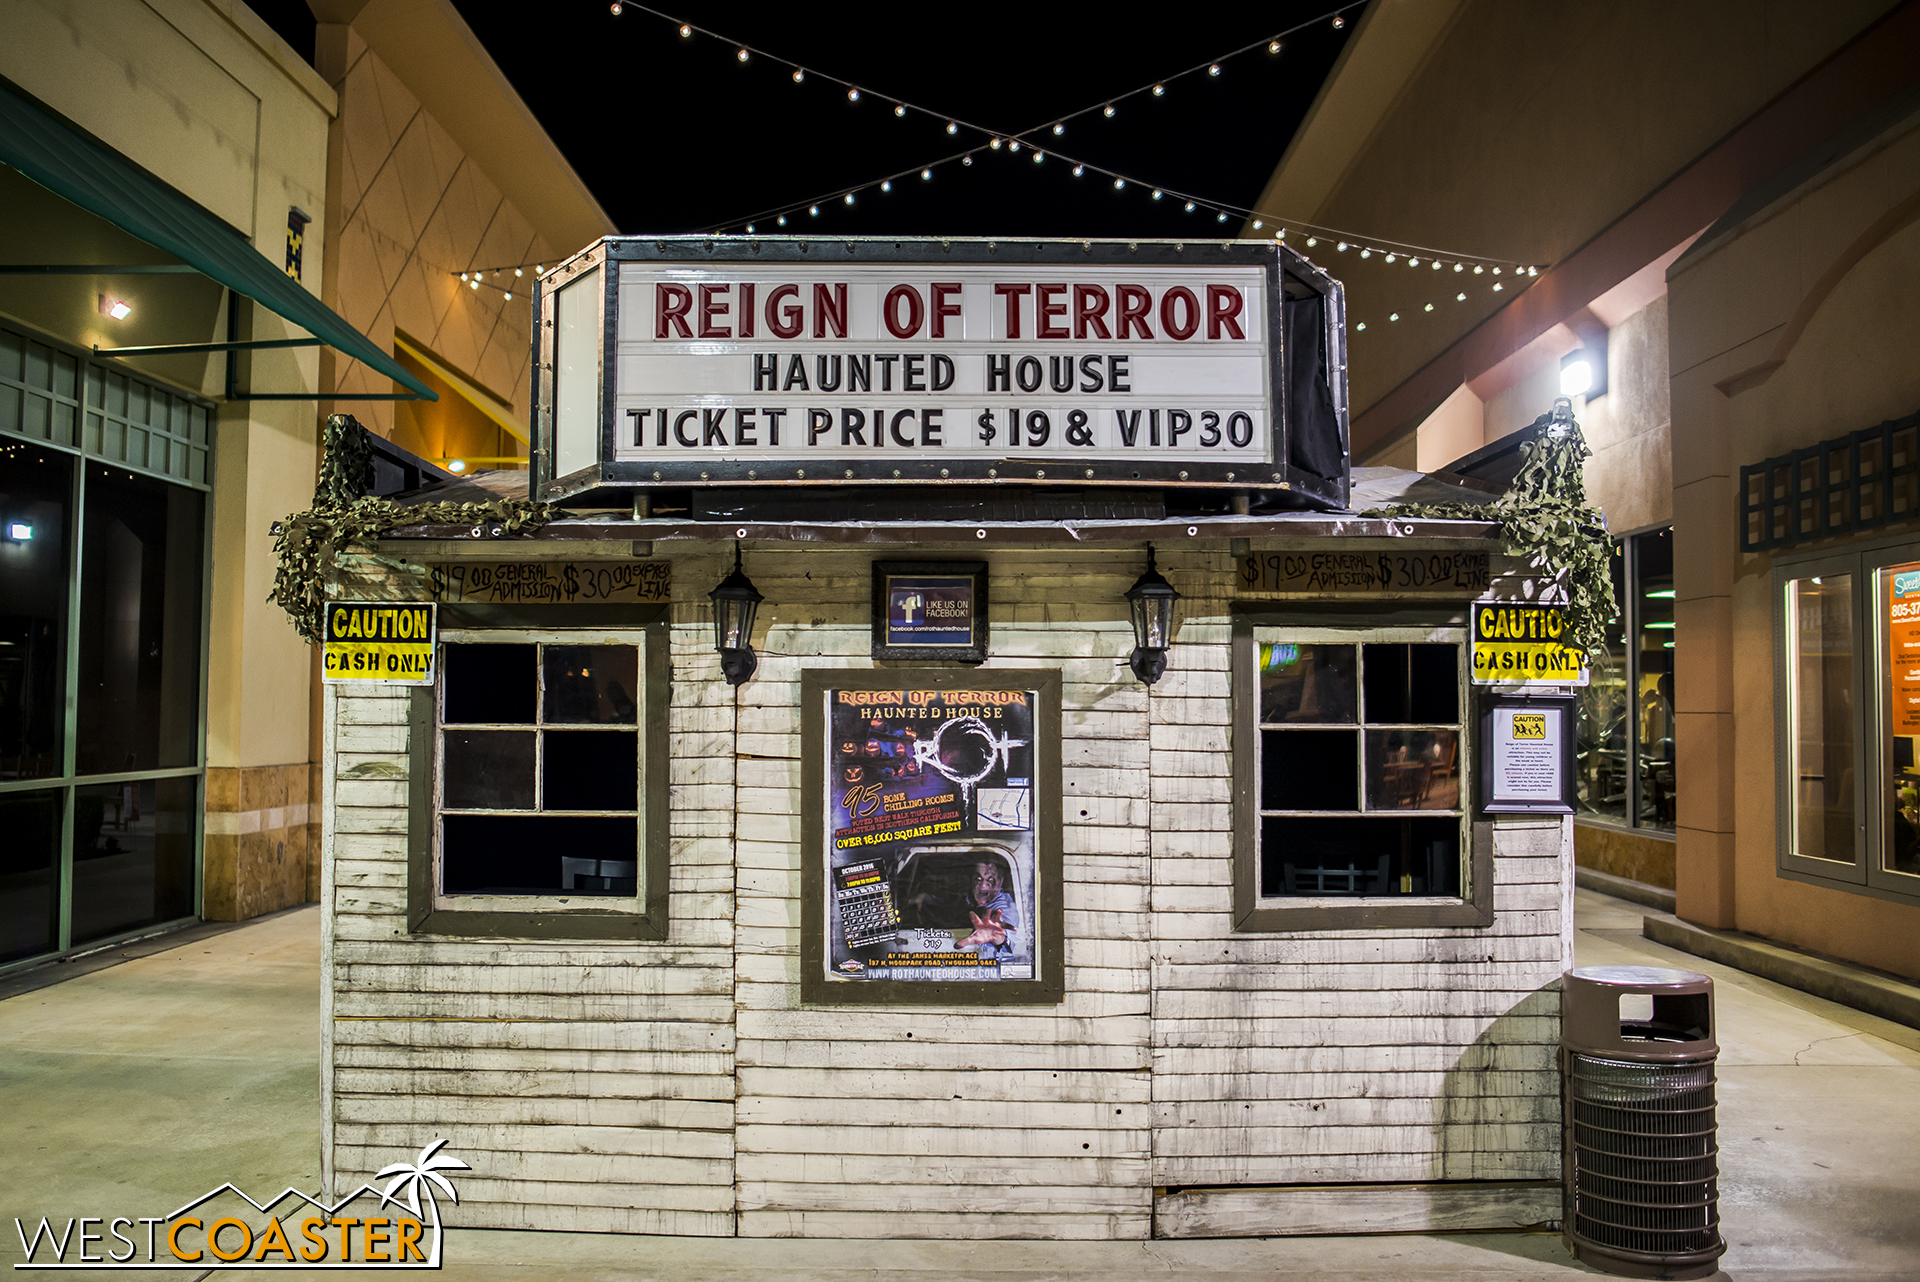 The ticket booth is the first sign of Reign of Terror, and also a place for guests to purchase tickets if they did not do so online.